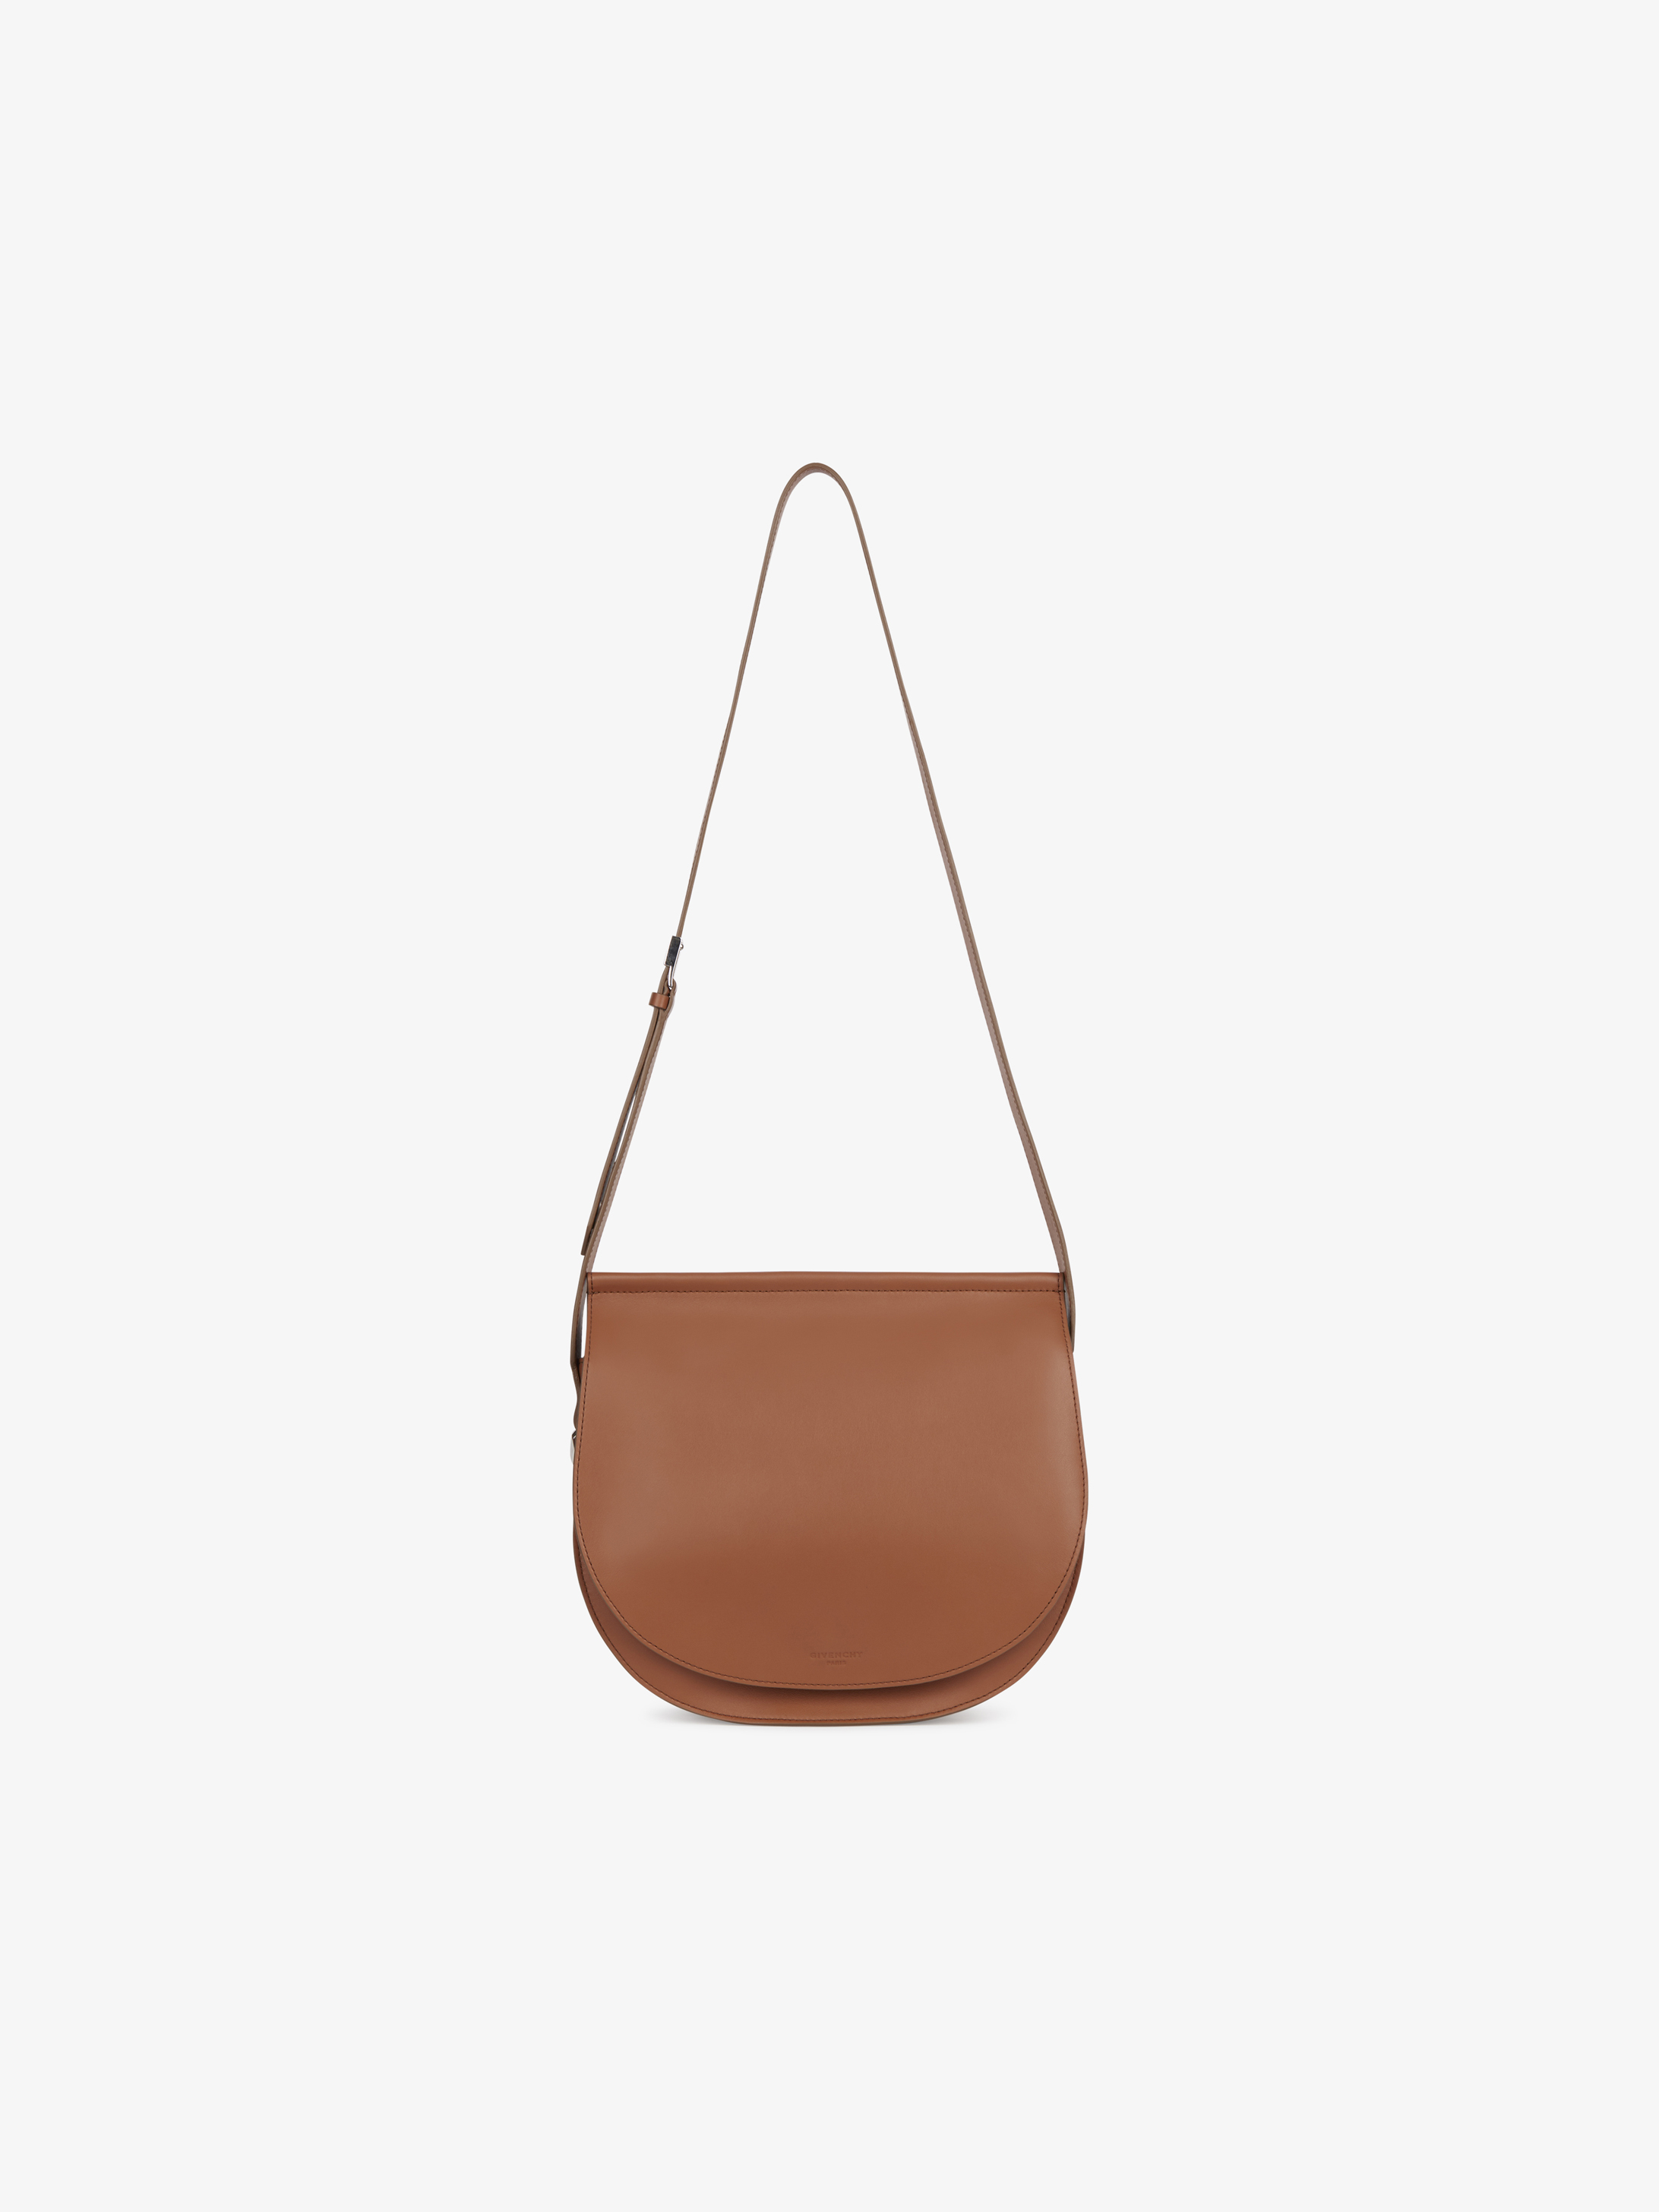 Infinity saddle bag